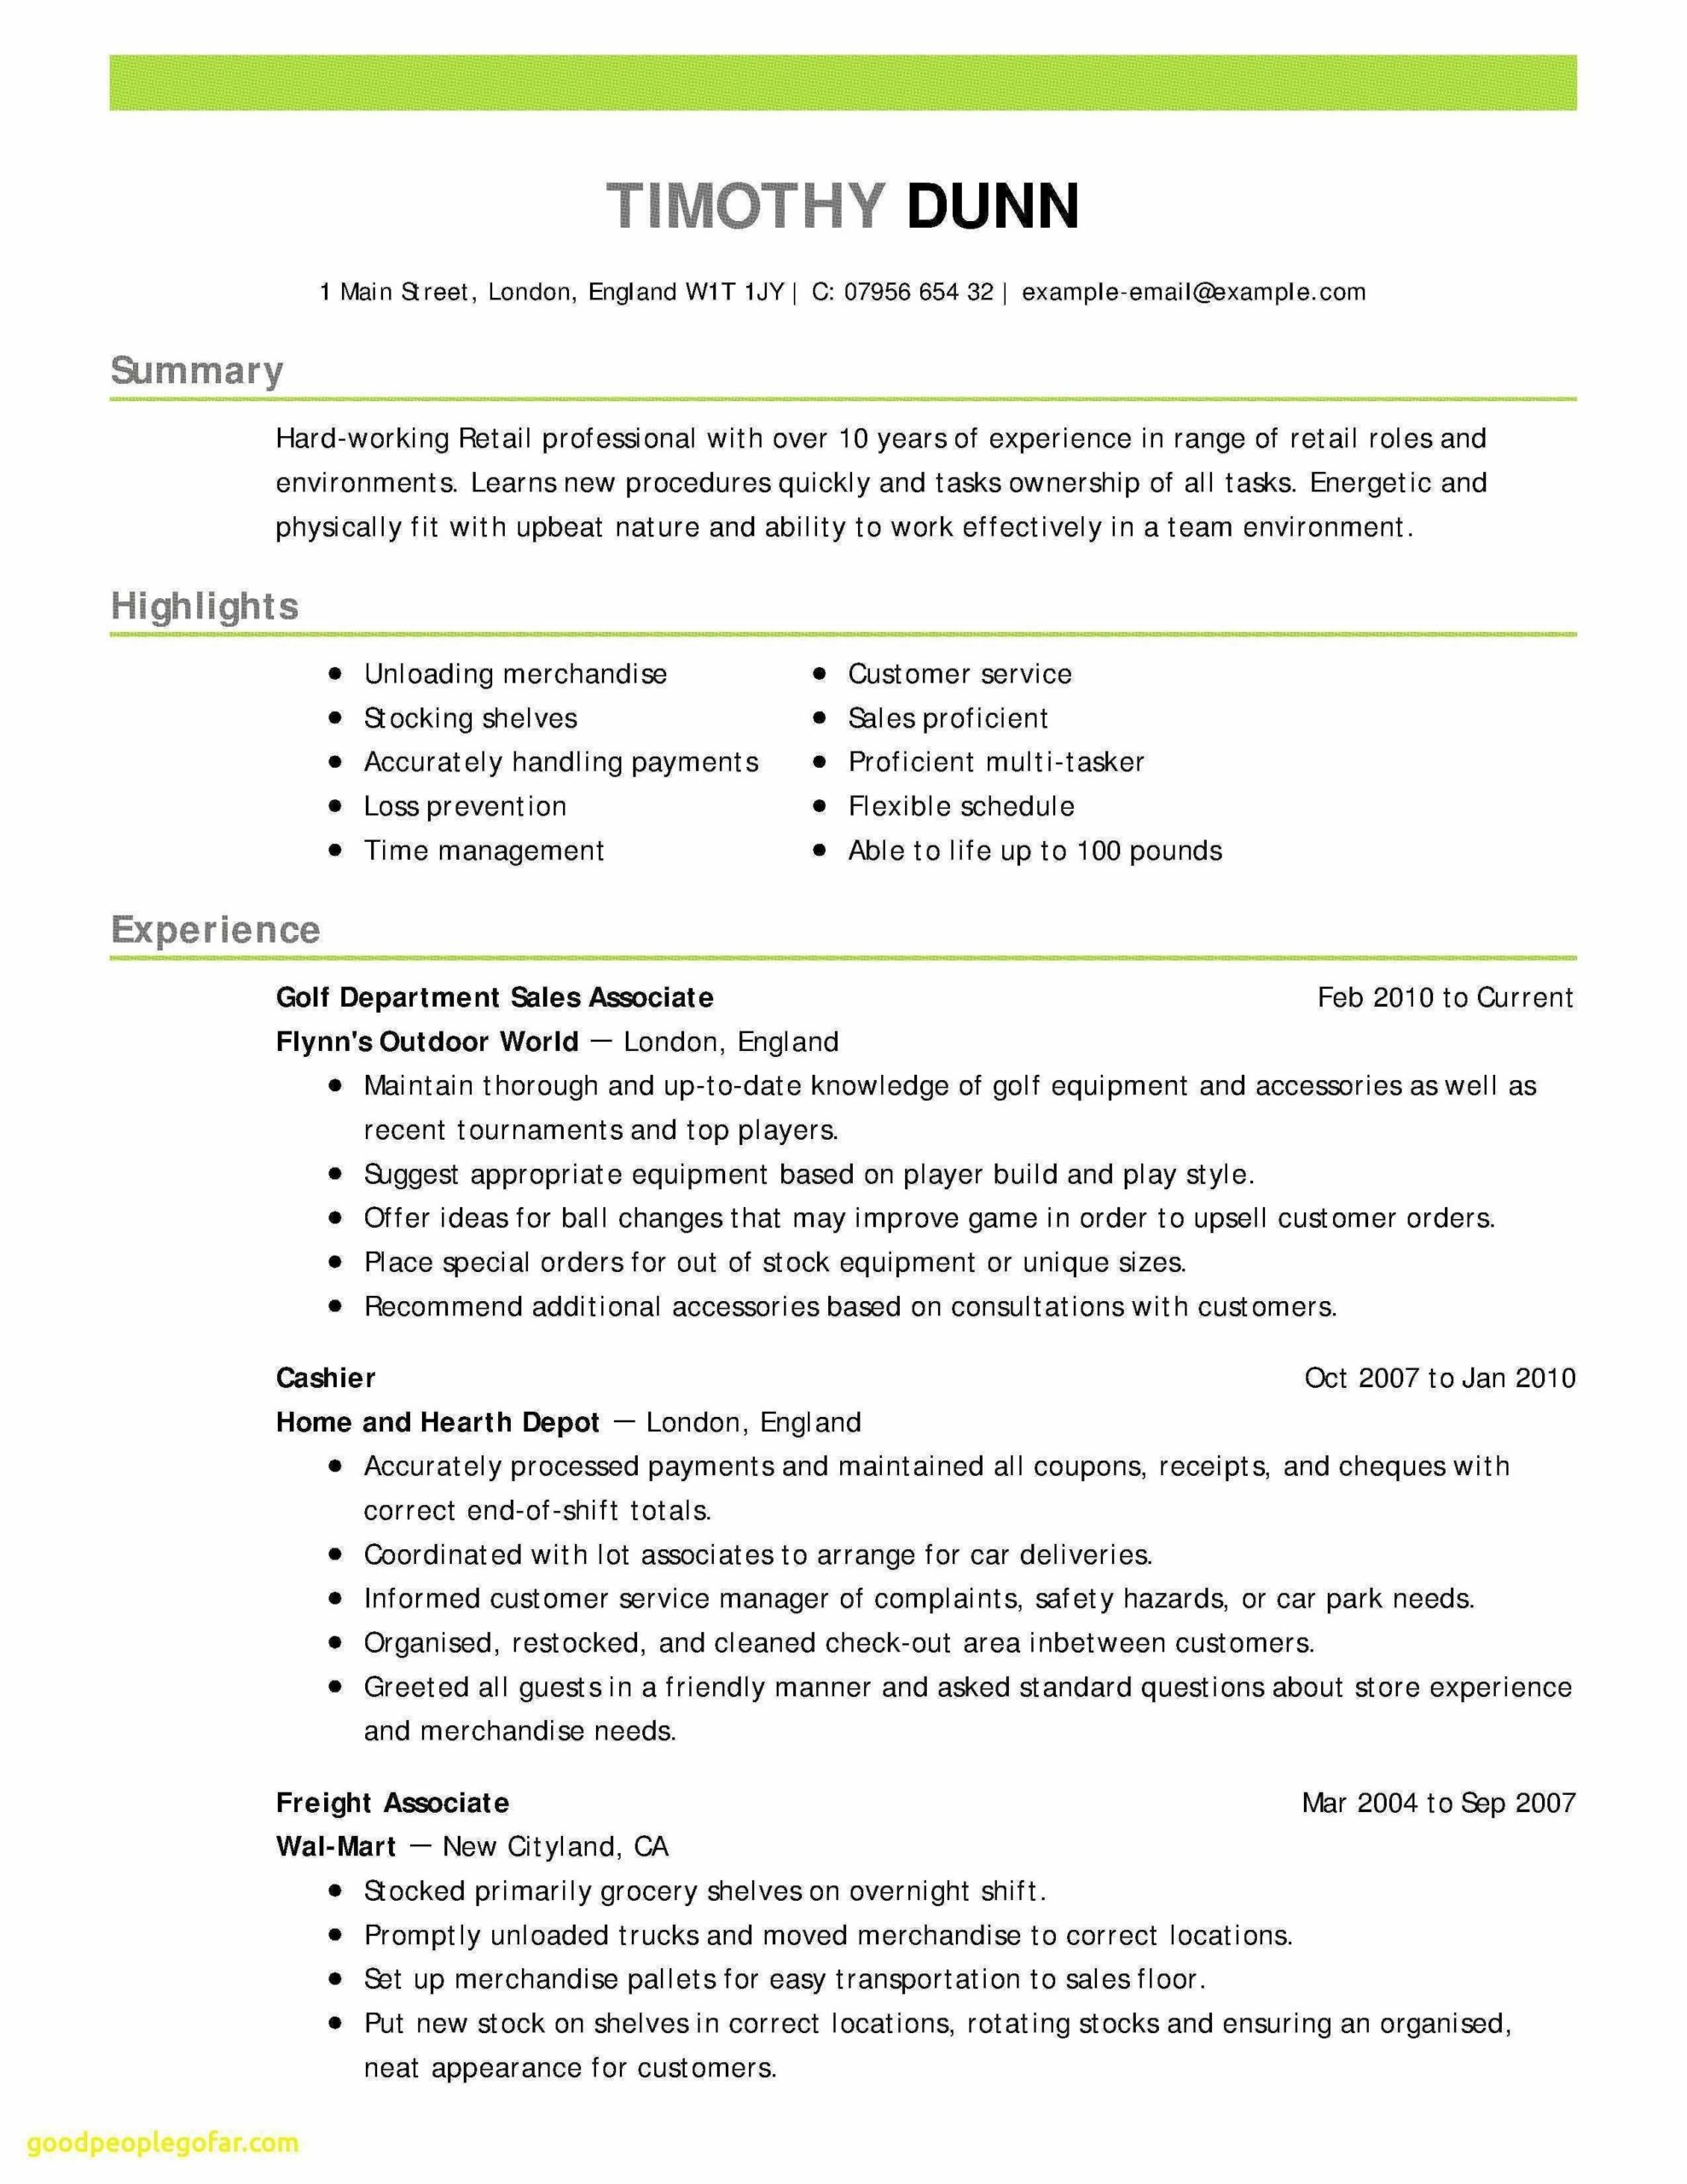 new business analyst resume templates can save at objective examples good customer Resume Payments Business Analyst Resume